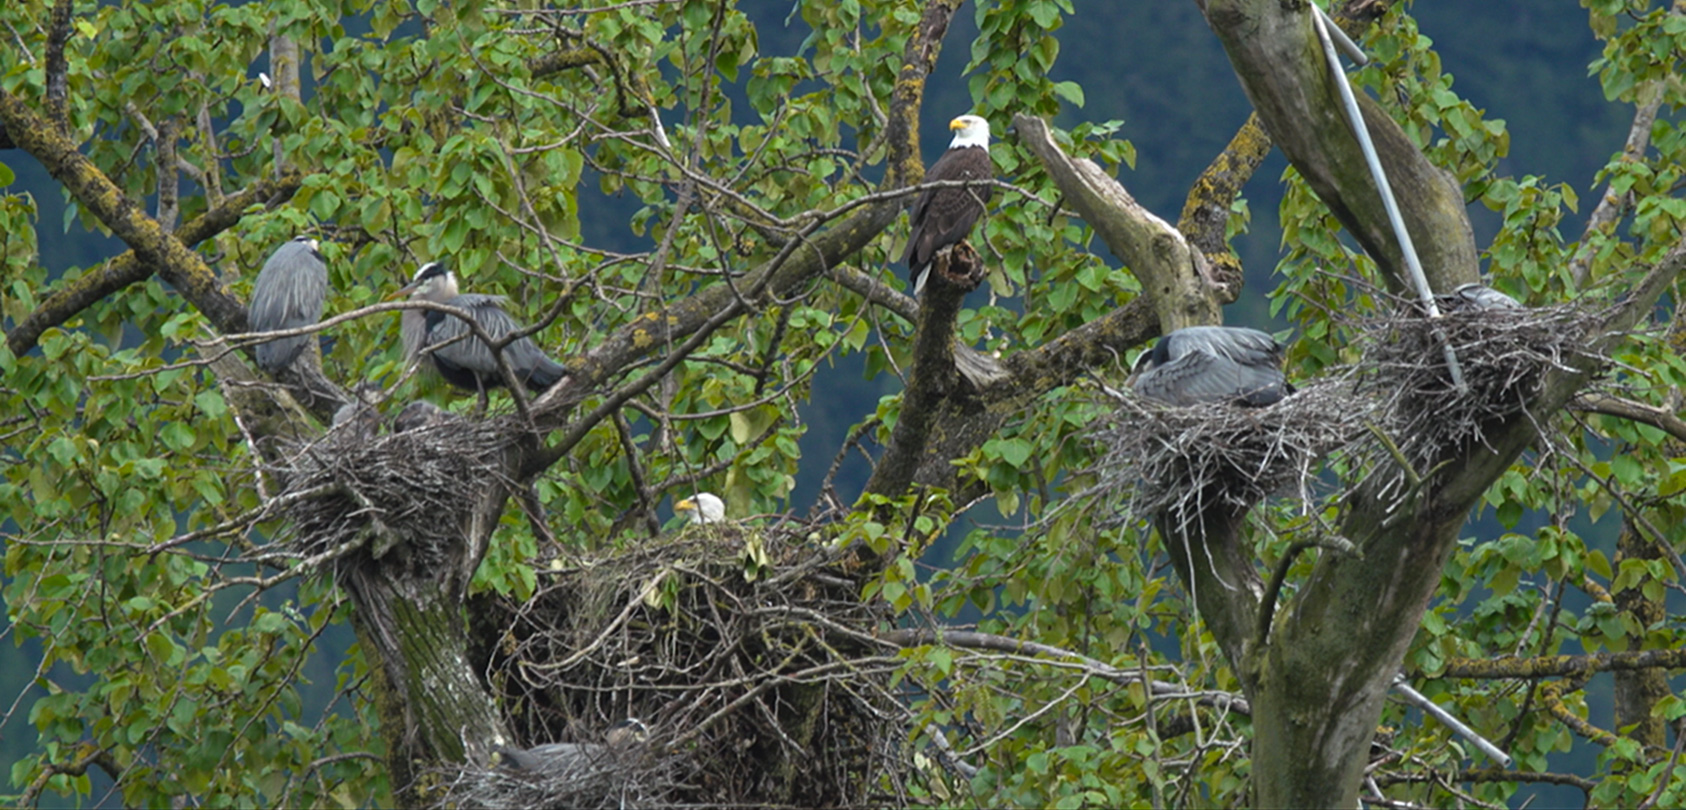 eagle and heron nests beside each other